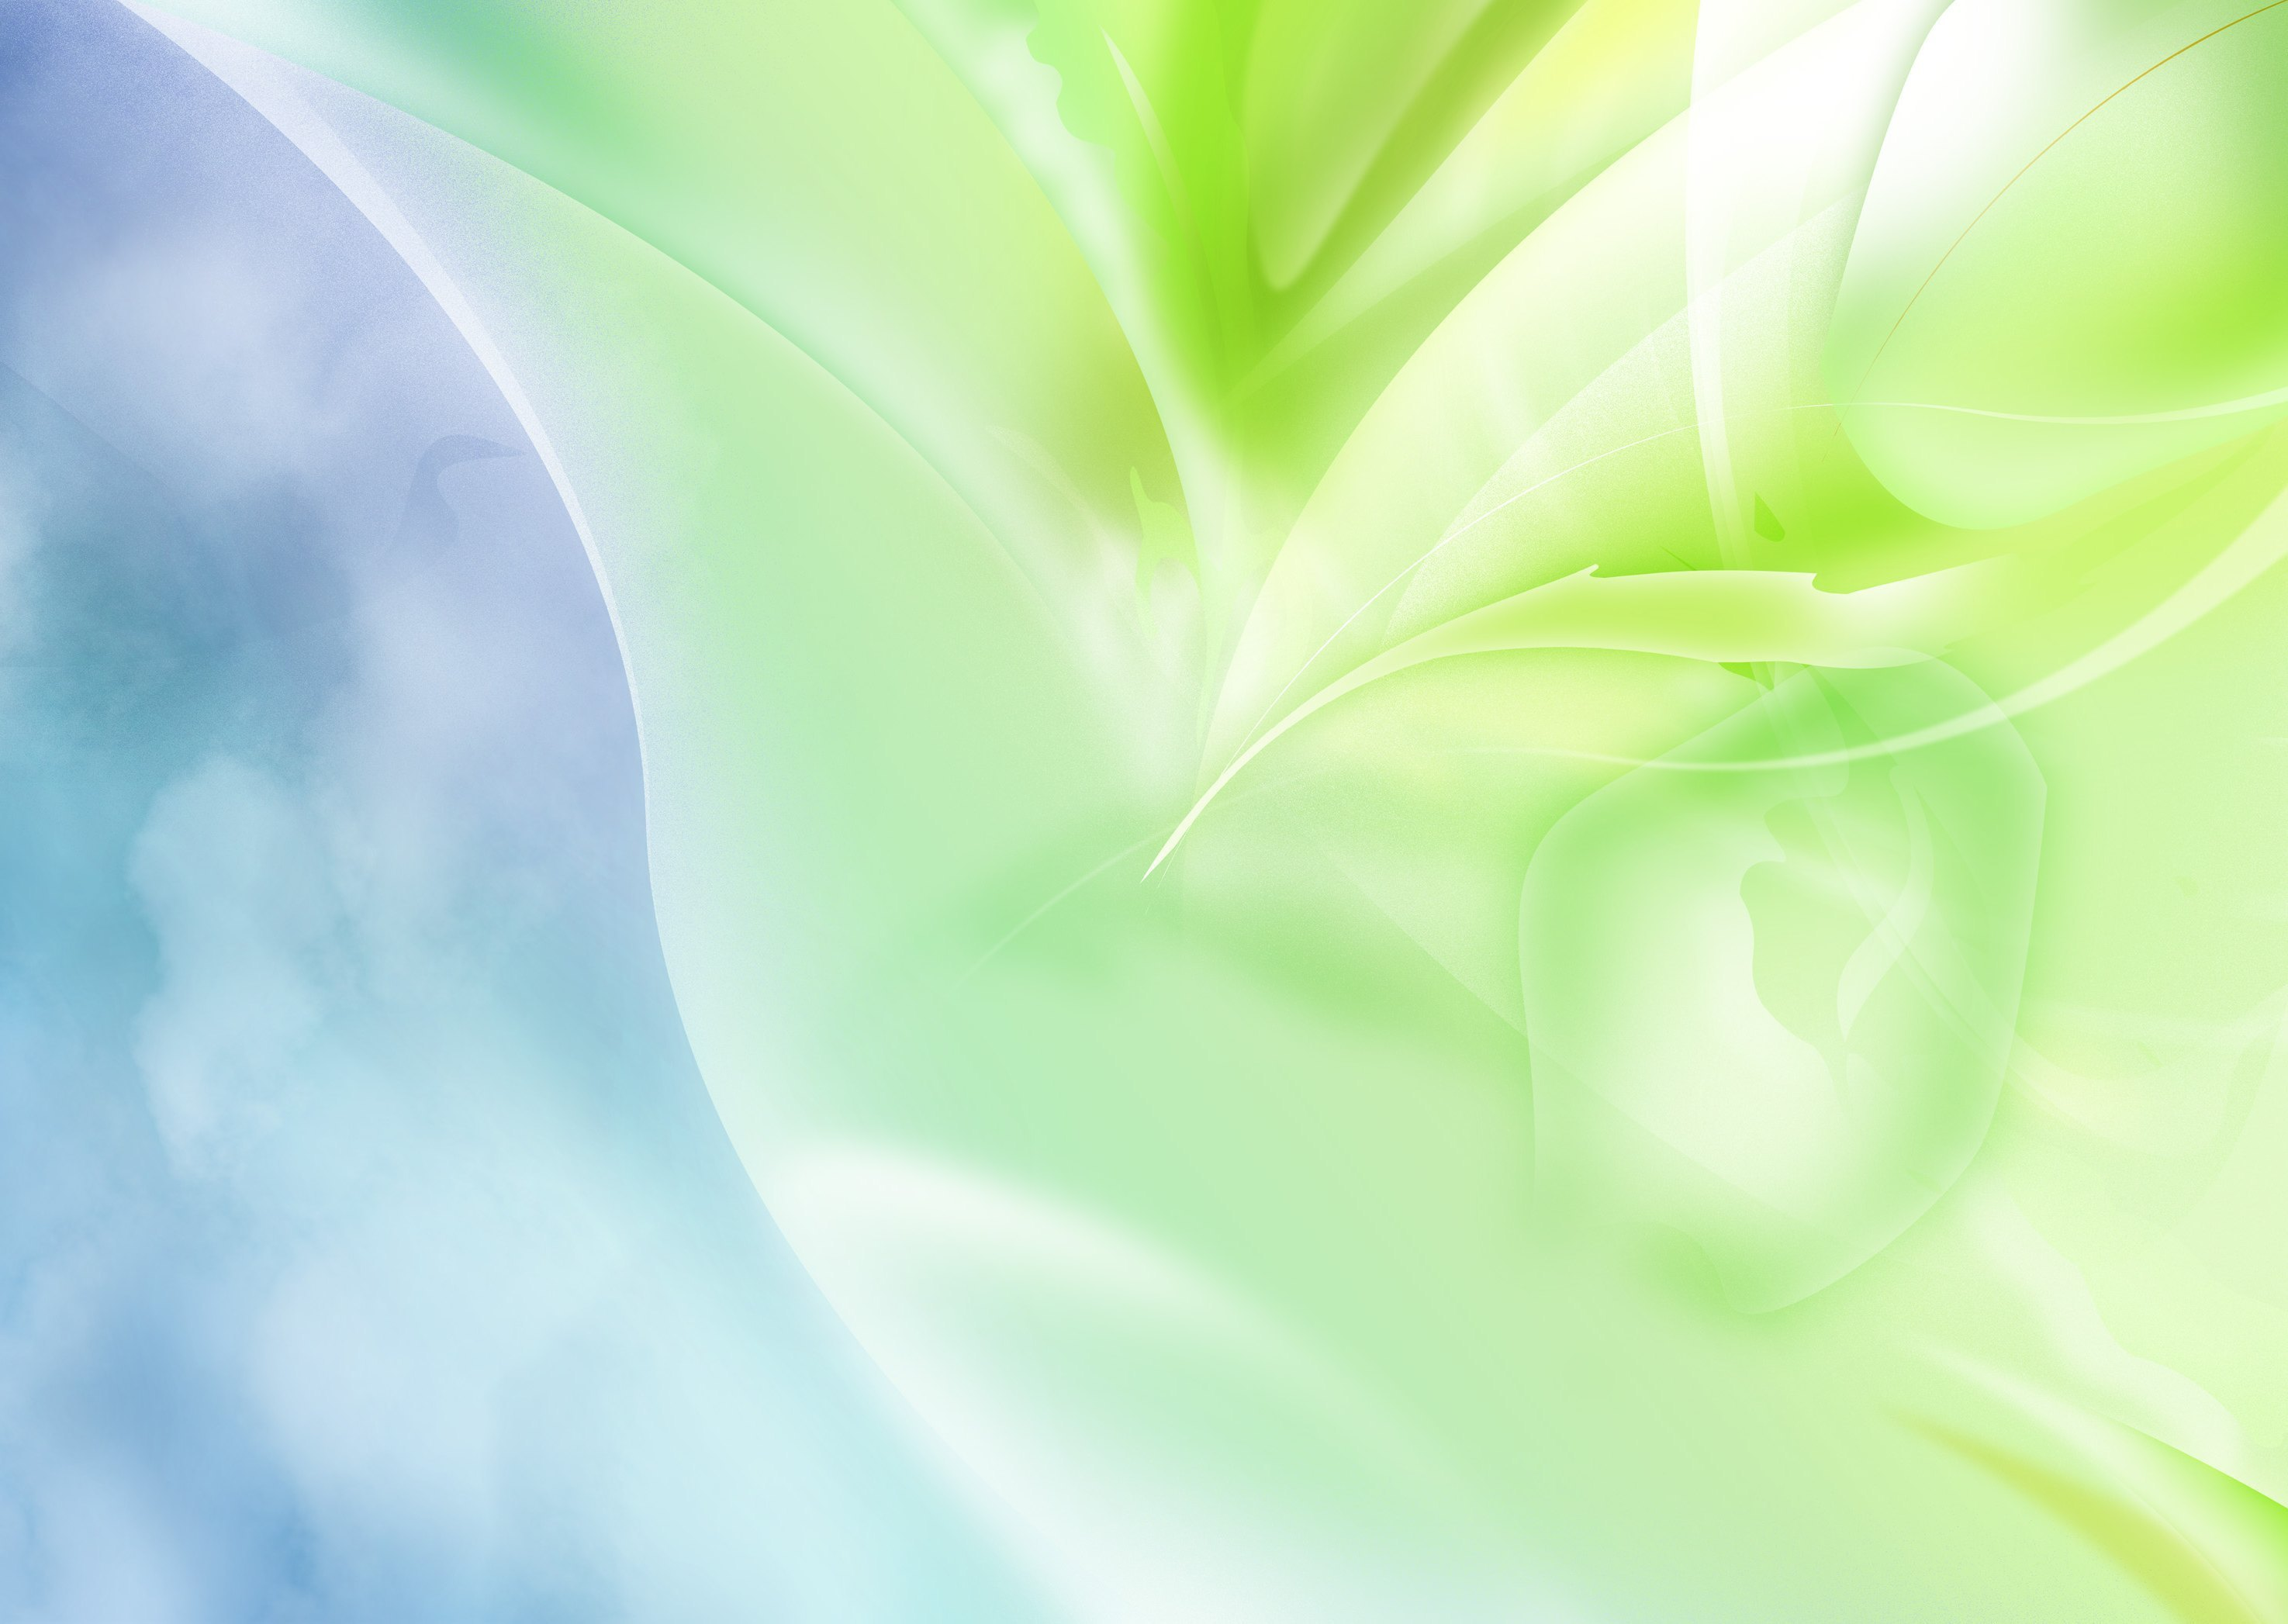 Green abstract blue background wallpapers and images   wallpapers 2950x2094